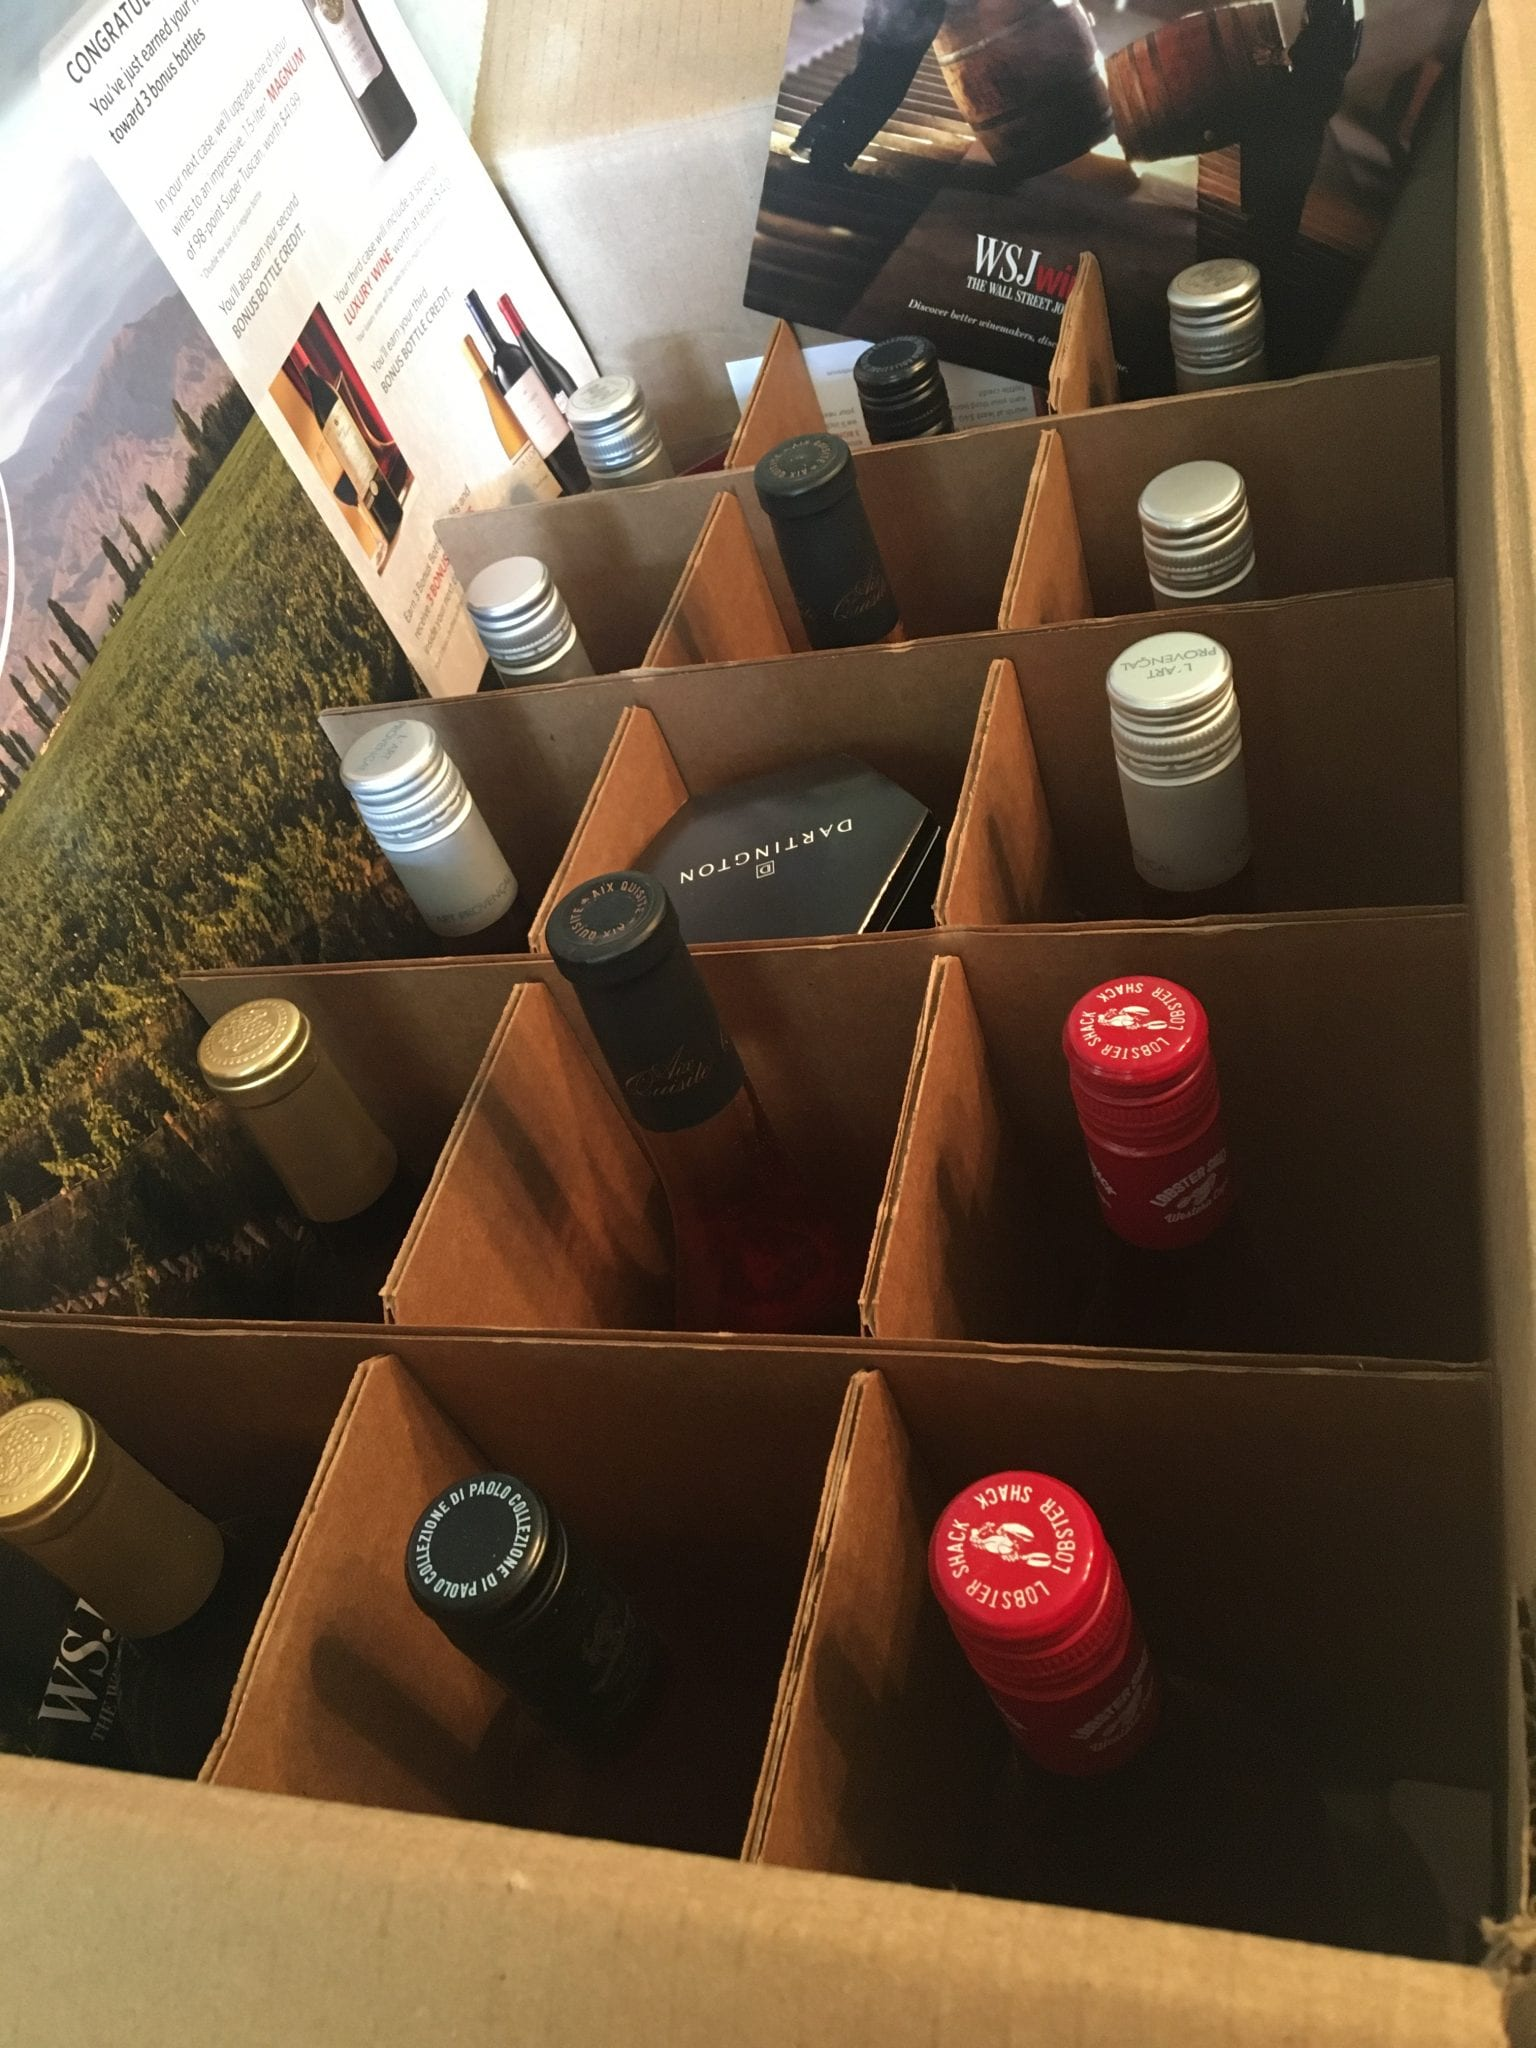 A box filled with bottles of wine